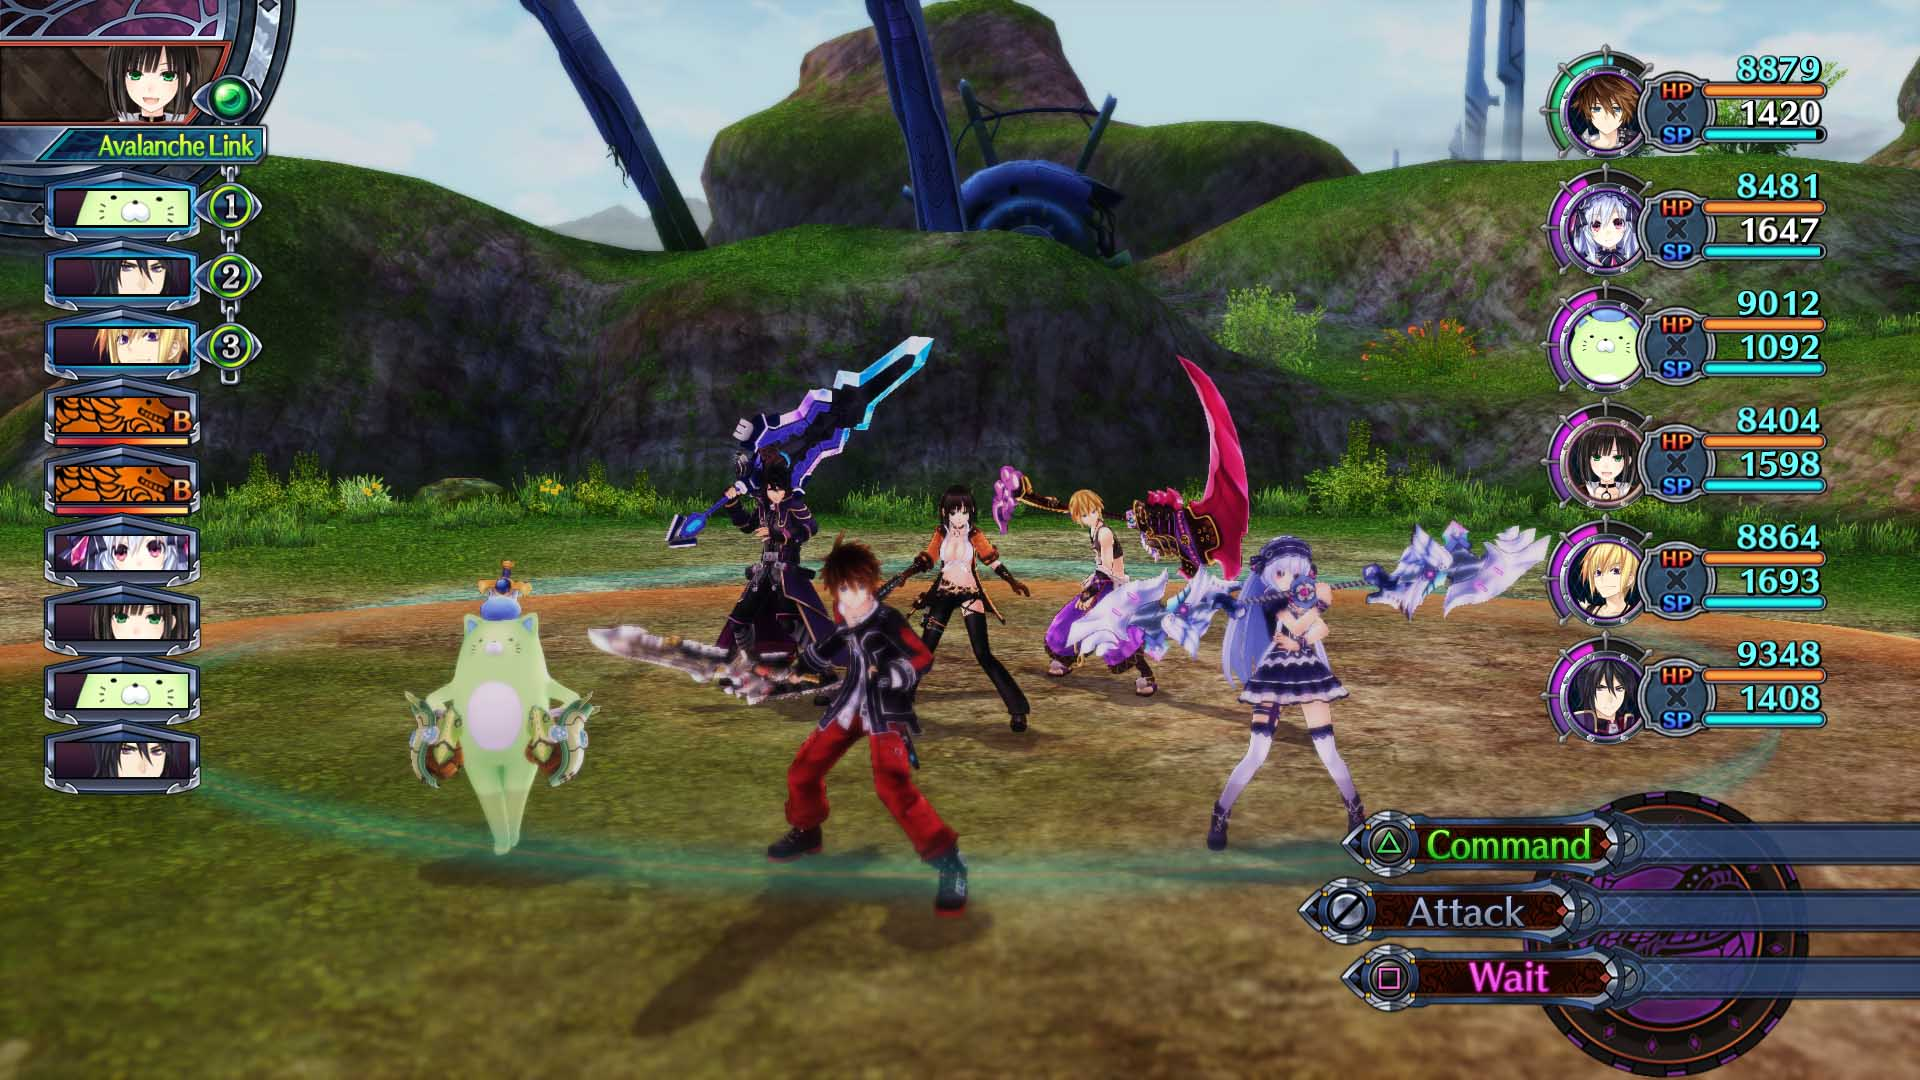 Fairy Fencer F Advent Dark Force 3